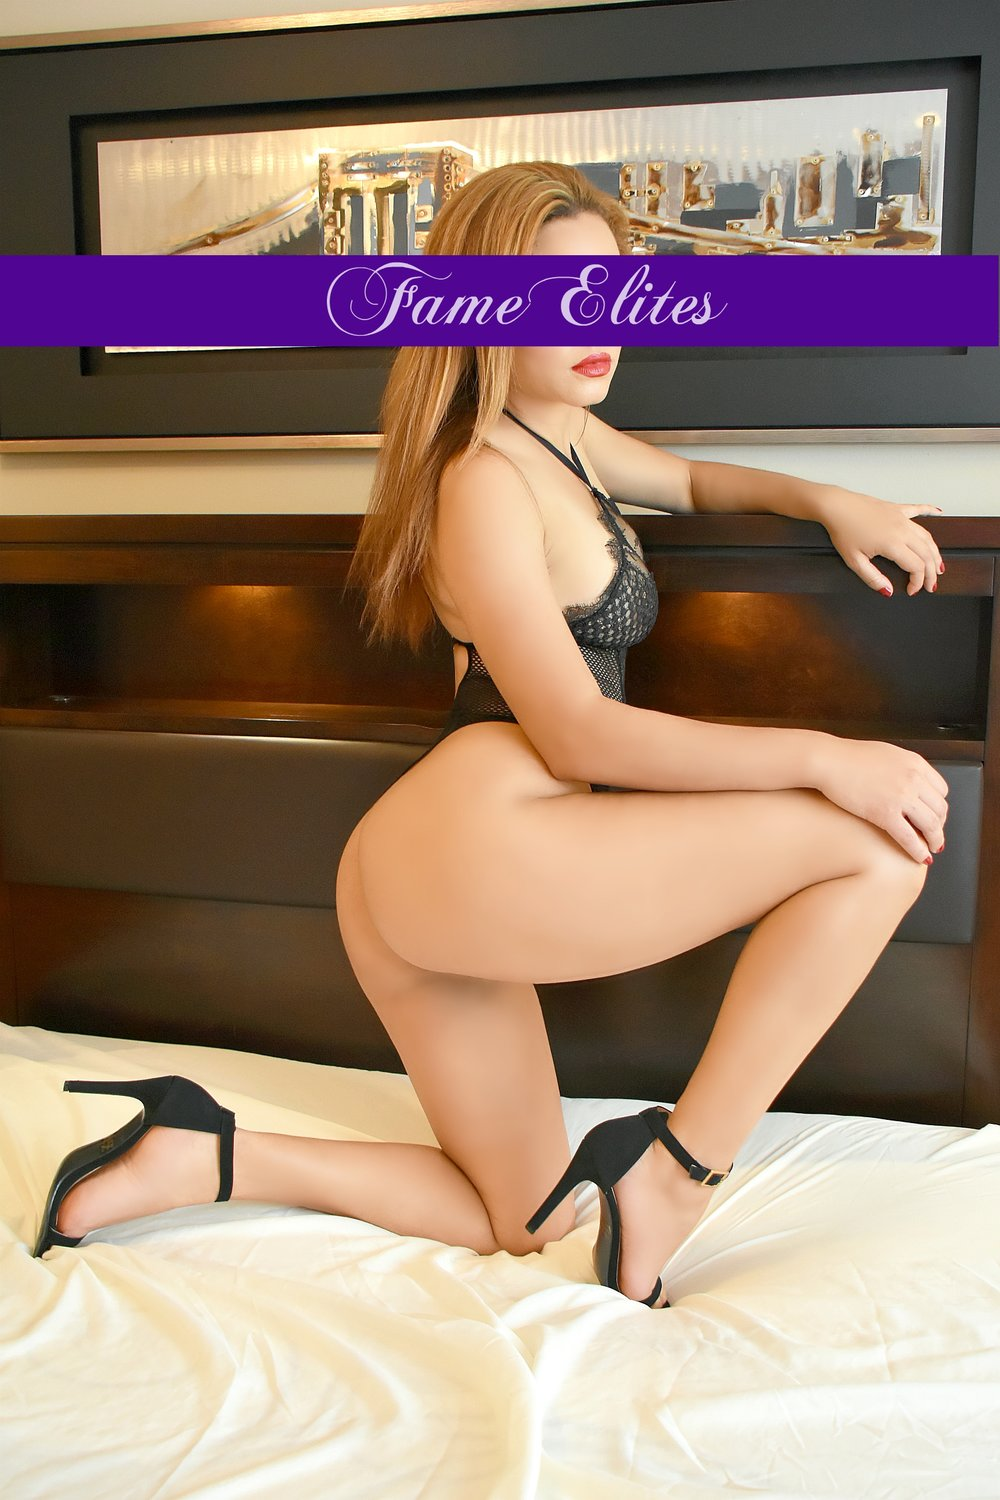 "renee - Age: Late 20'sHeight: 5'6""Measurements: 34-27-35Weight: 130 lbsHair: Light BrownEye: BrownDress Size: 4Hobbies/interests: Music, Fashion, TennisCharacter Traits: HumorousOccupation: Office Clerk"